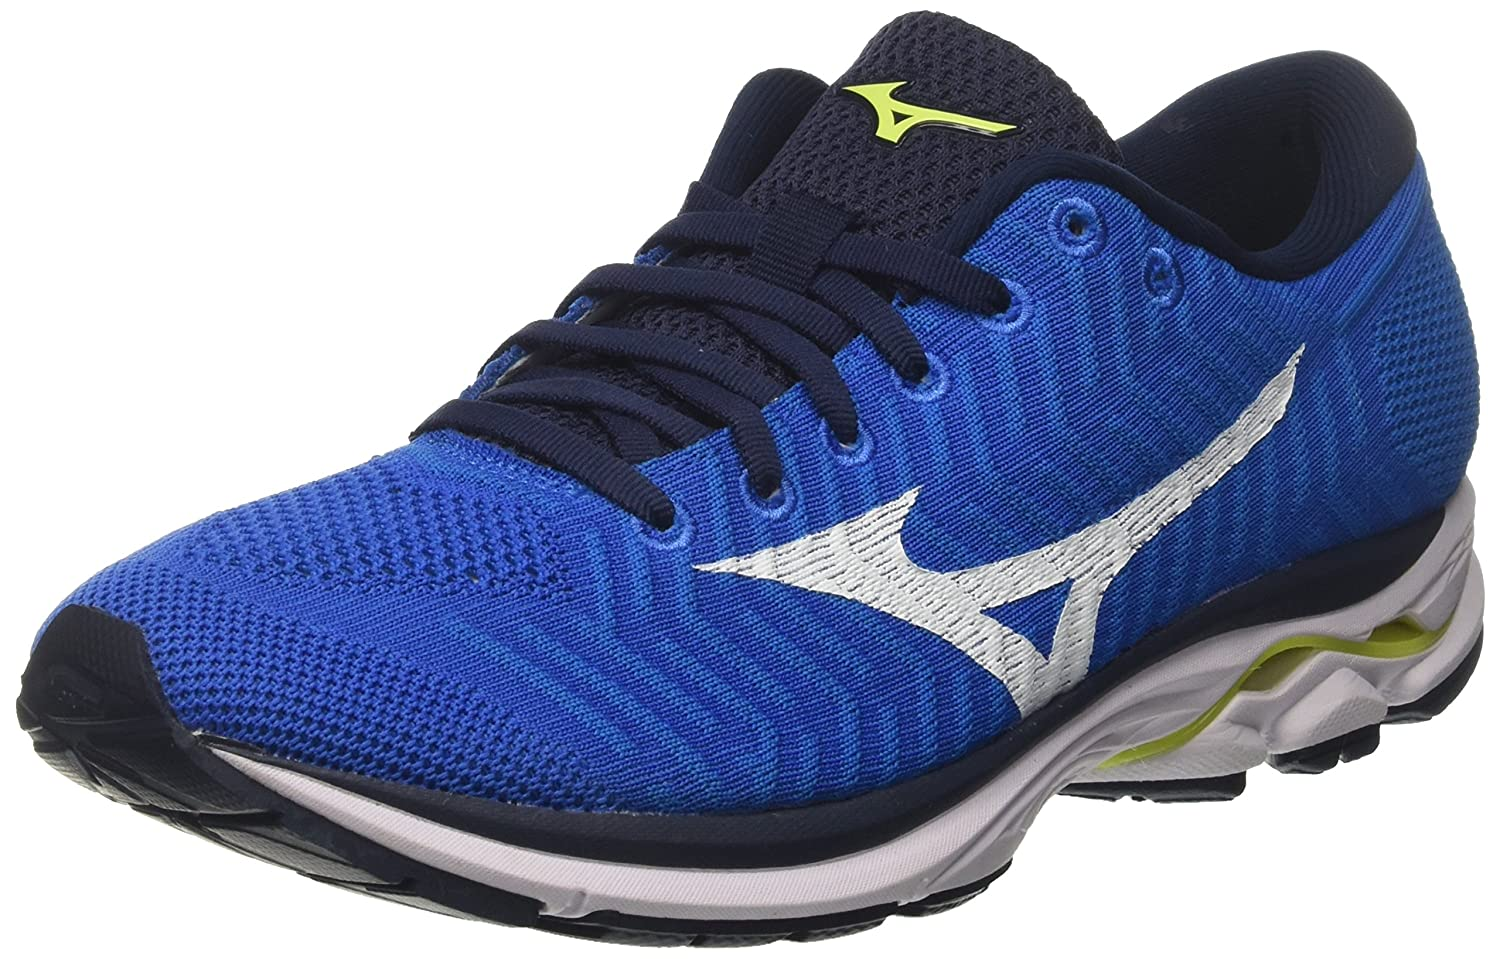 Mizuno Waveknit R1, Zapatillas de Running para Hombre 45 EU|Azul (Brilliantblue/White/Safetyyellow 01)